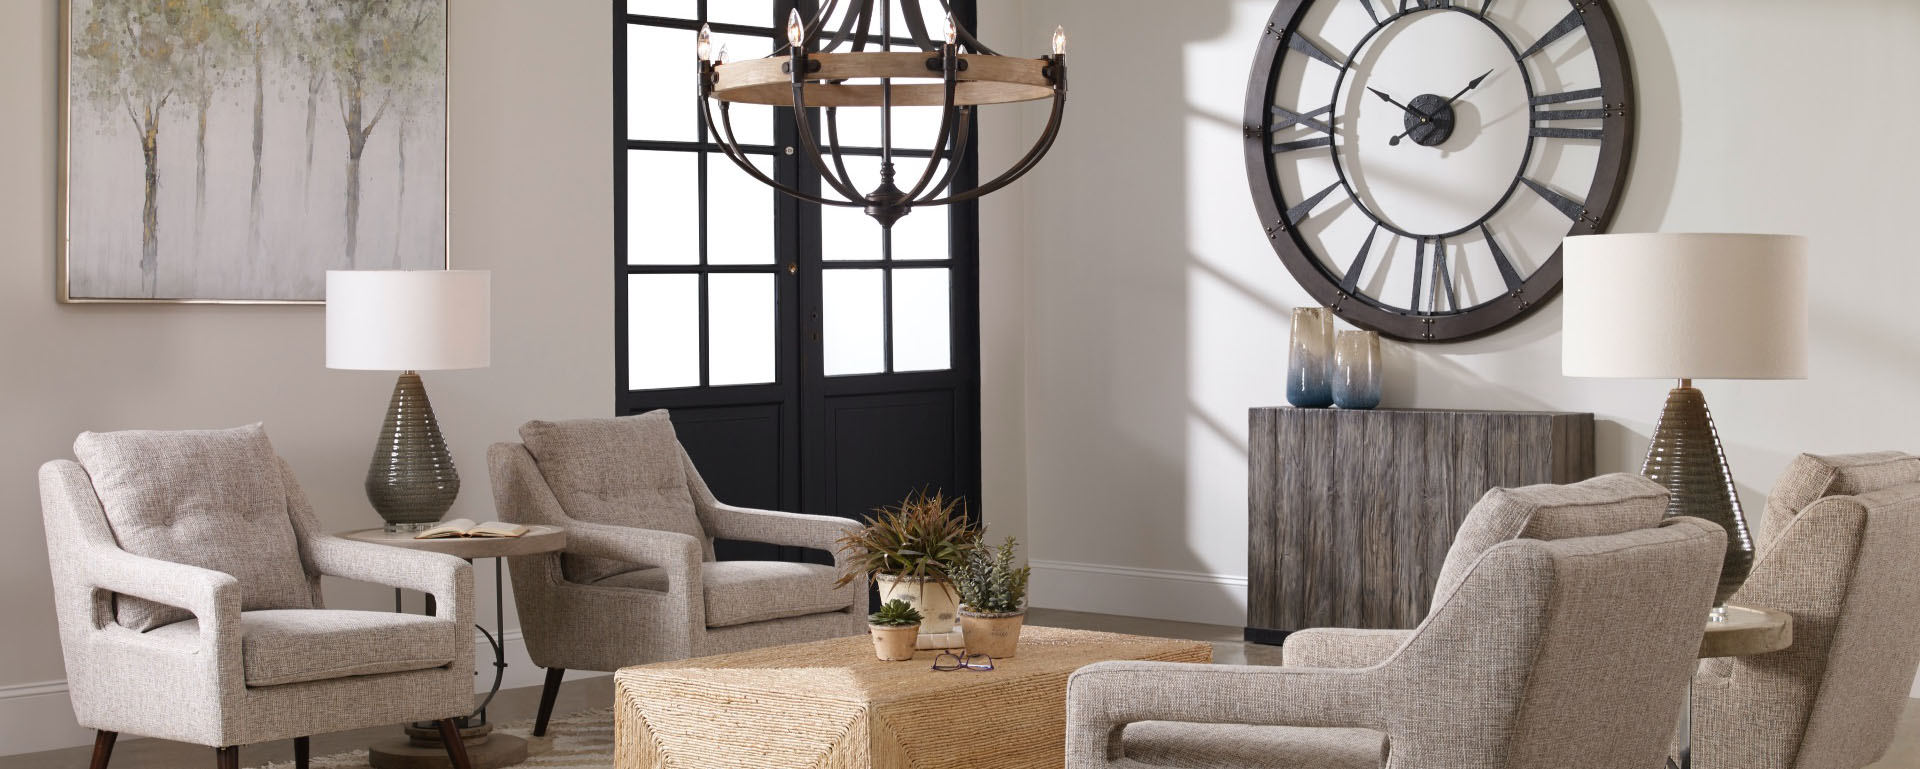 Uttermost Home Furnishings